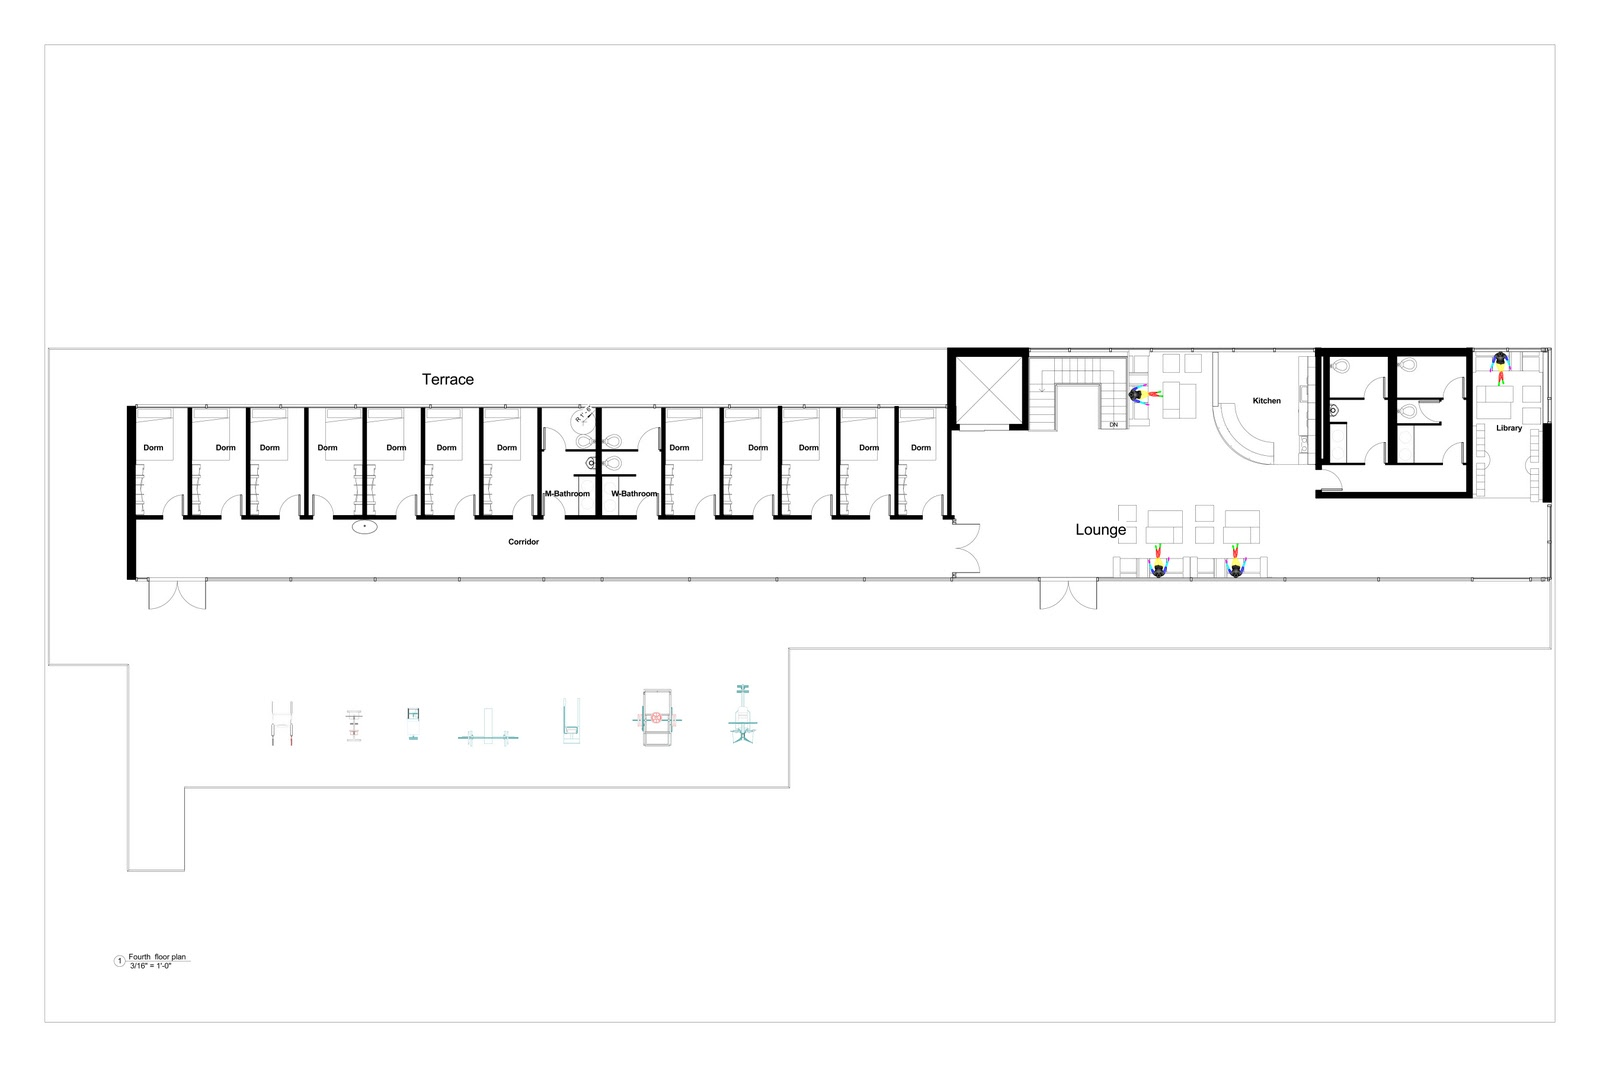 Arch3611 Theoretical Design Fire Station Floor PlansProposed – Fire Station Floor Plans